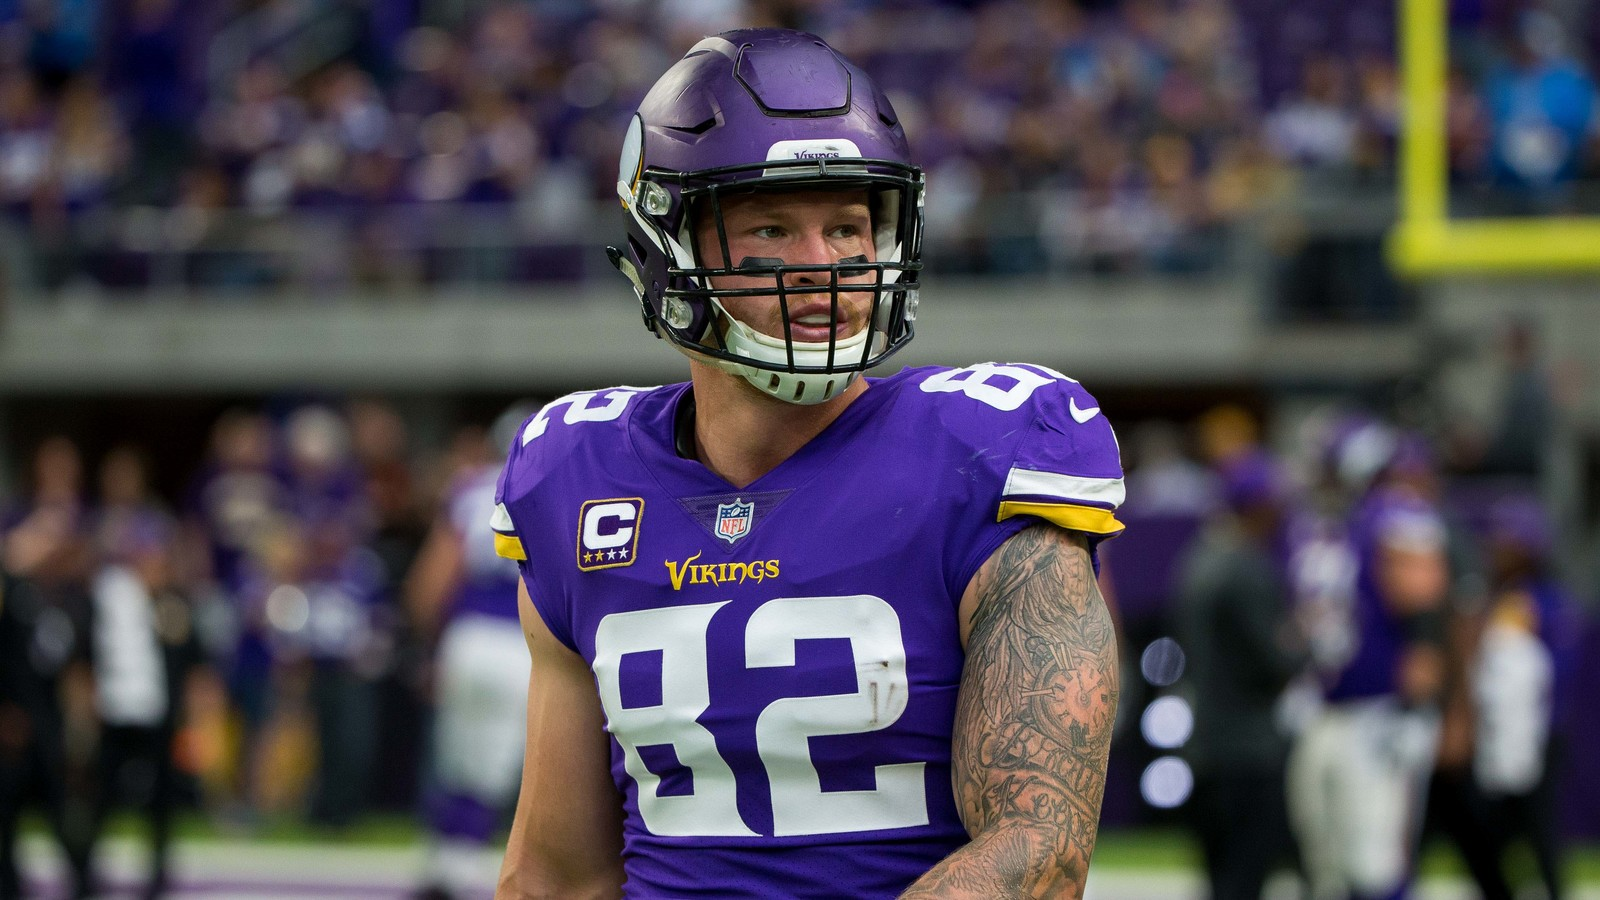 Vikings upgrade TE Kyle Rudolph from doubtful to questionable for Sunday